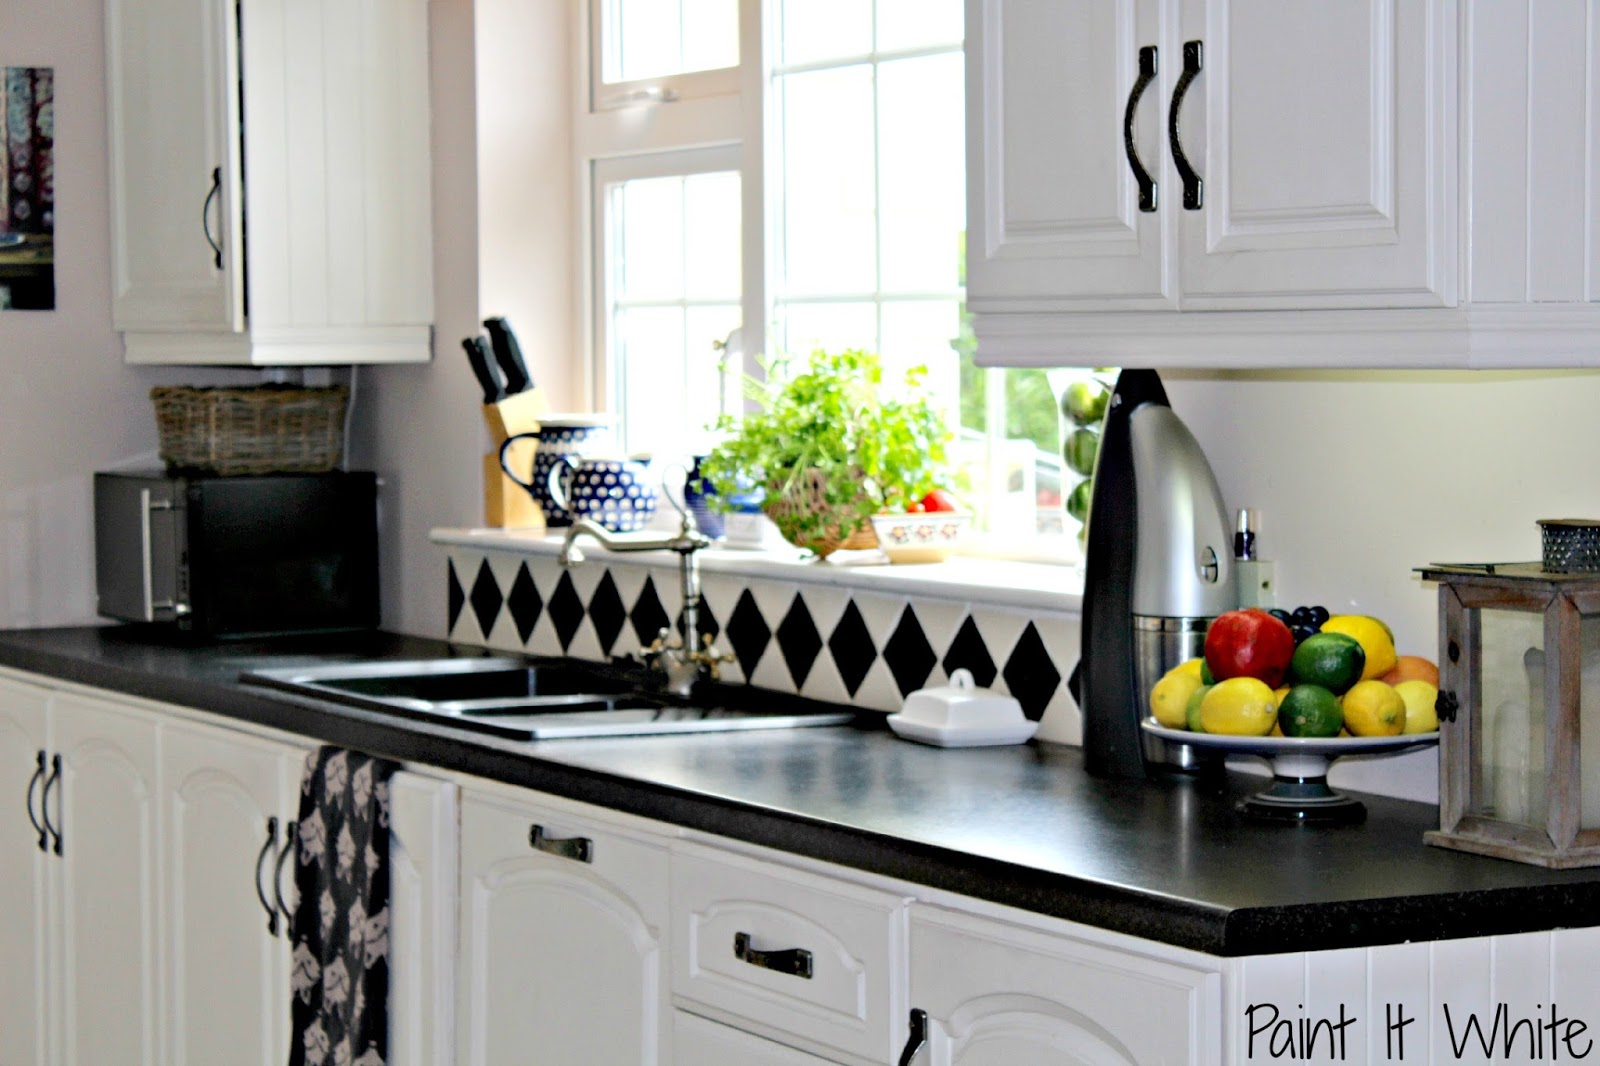 1 Chalk Painted Cabinets In Rustic White Kitchen Paint It Featured On Remodelaholic